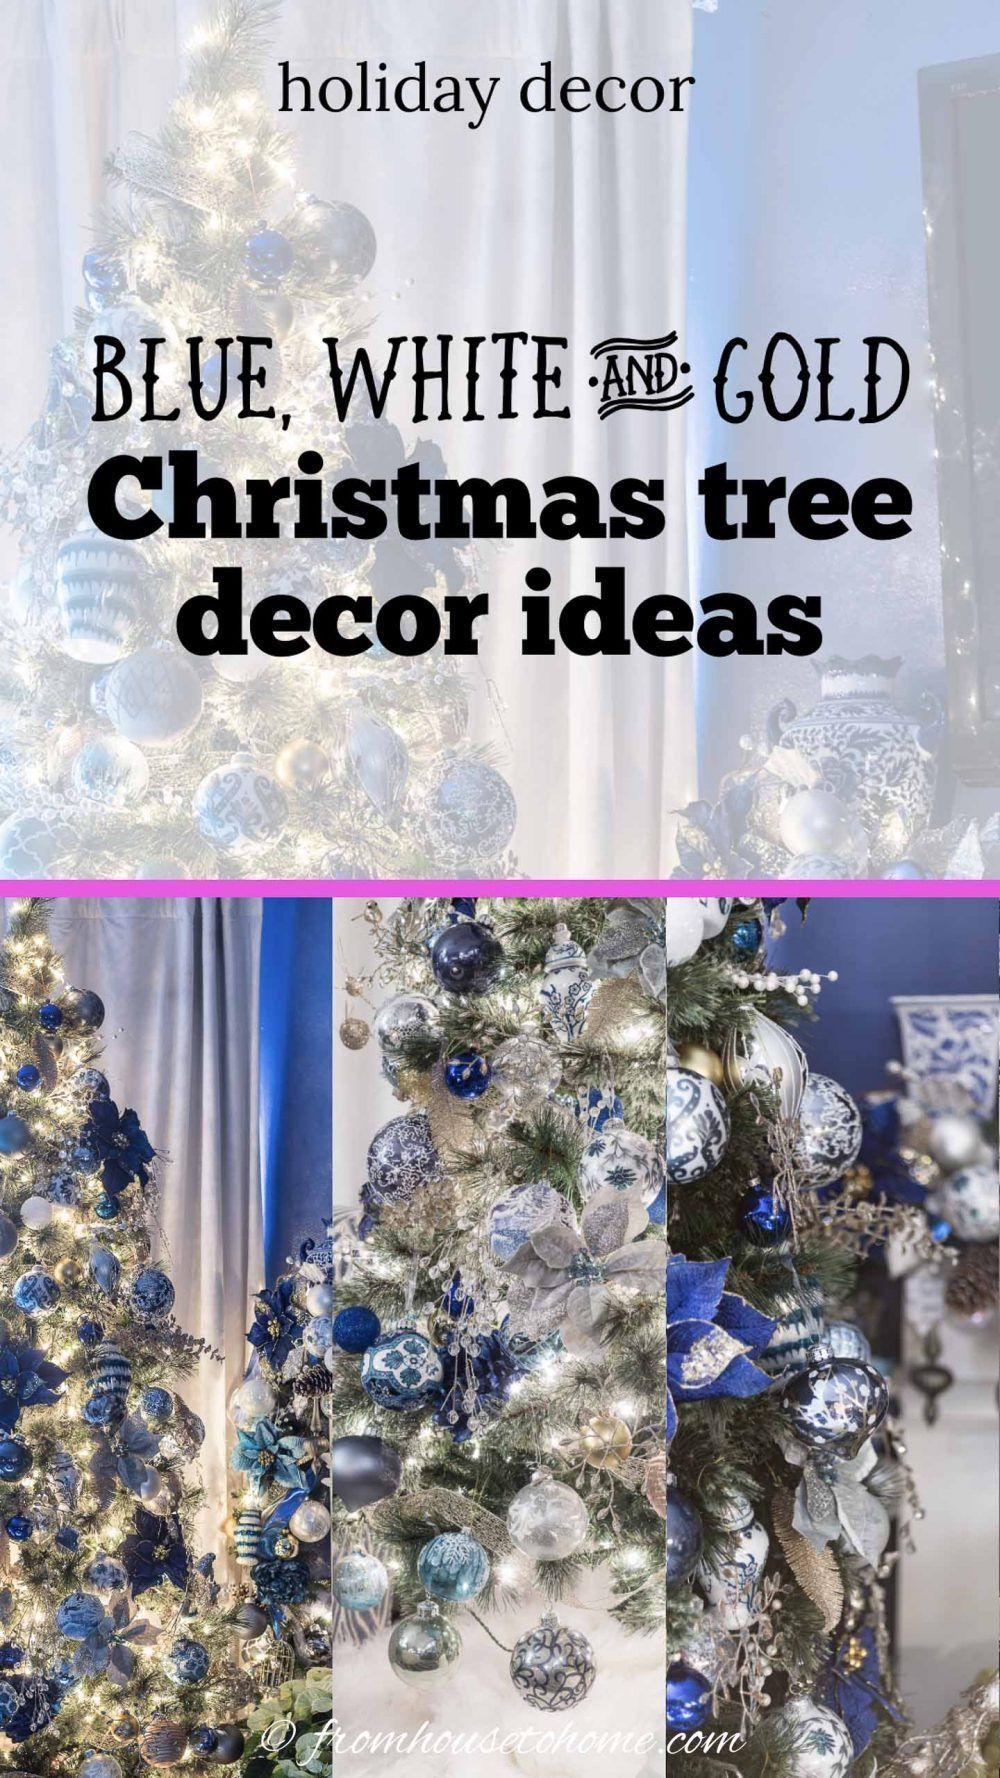 Blue and white Christmas decorations are my favorite! I love the idea of using ginger jars as part of the fireplace mantle decor. #fromhousetohome #christmastree #christmasdecor #xmas #christmastree #holidaysandevents